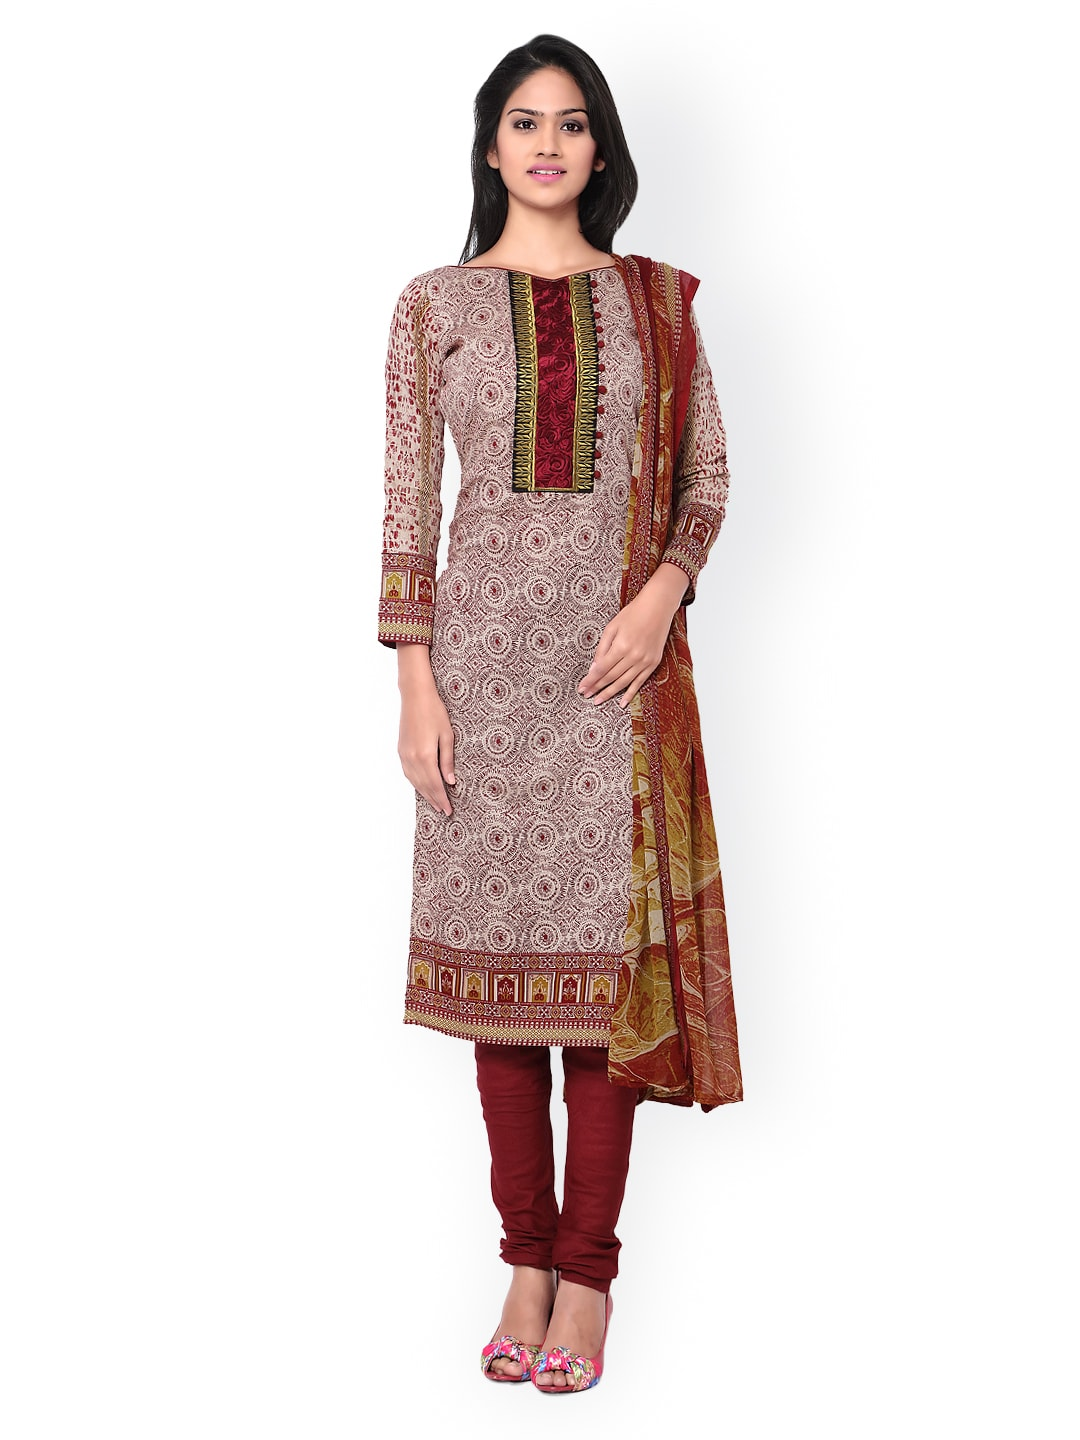 Inddus Maroon & Beige Block Print Cotton Unstitched Dress Material image